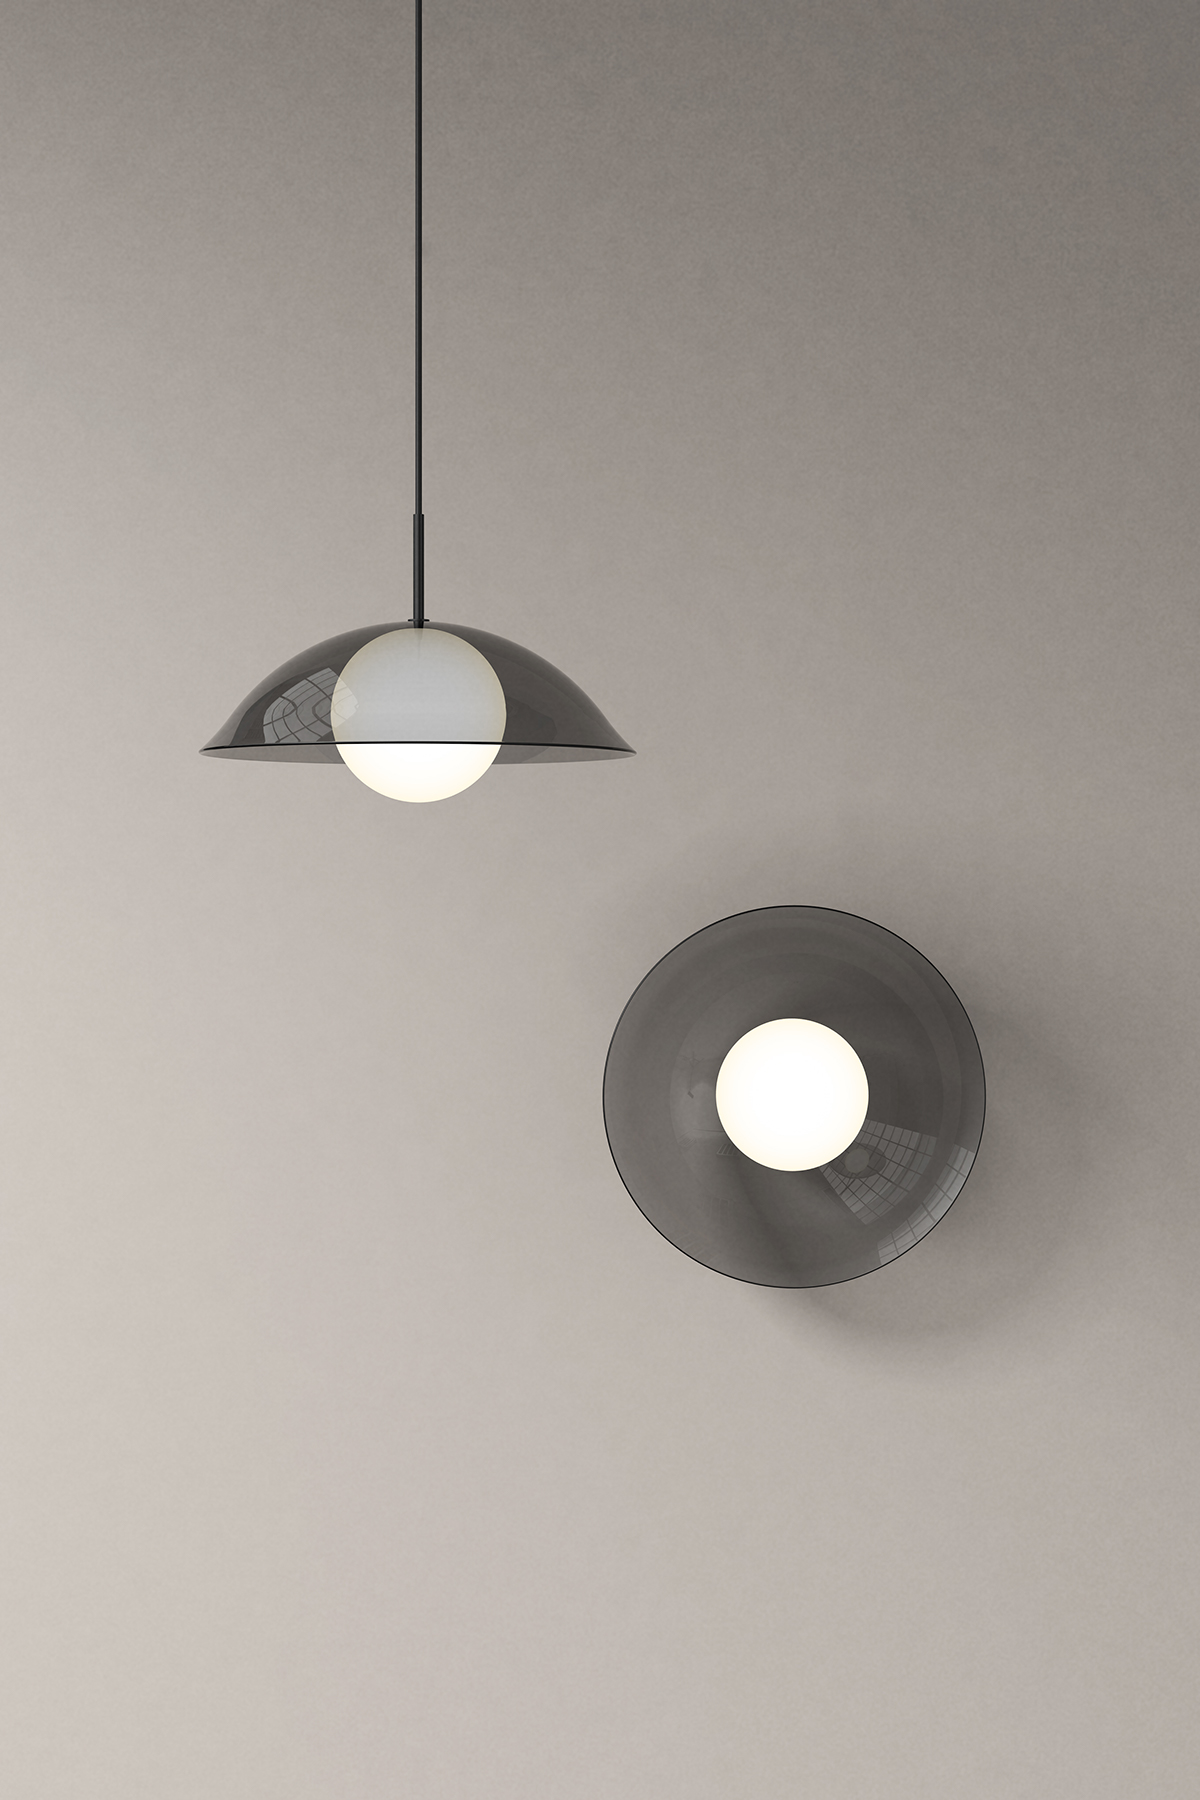 Pearl black pendant and wall light by Karakter